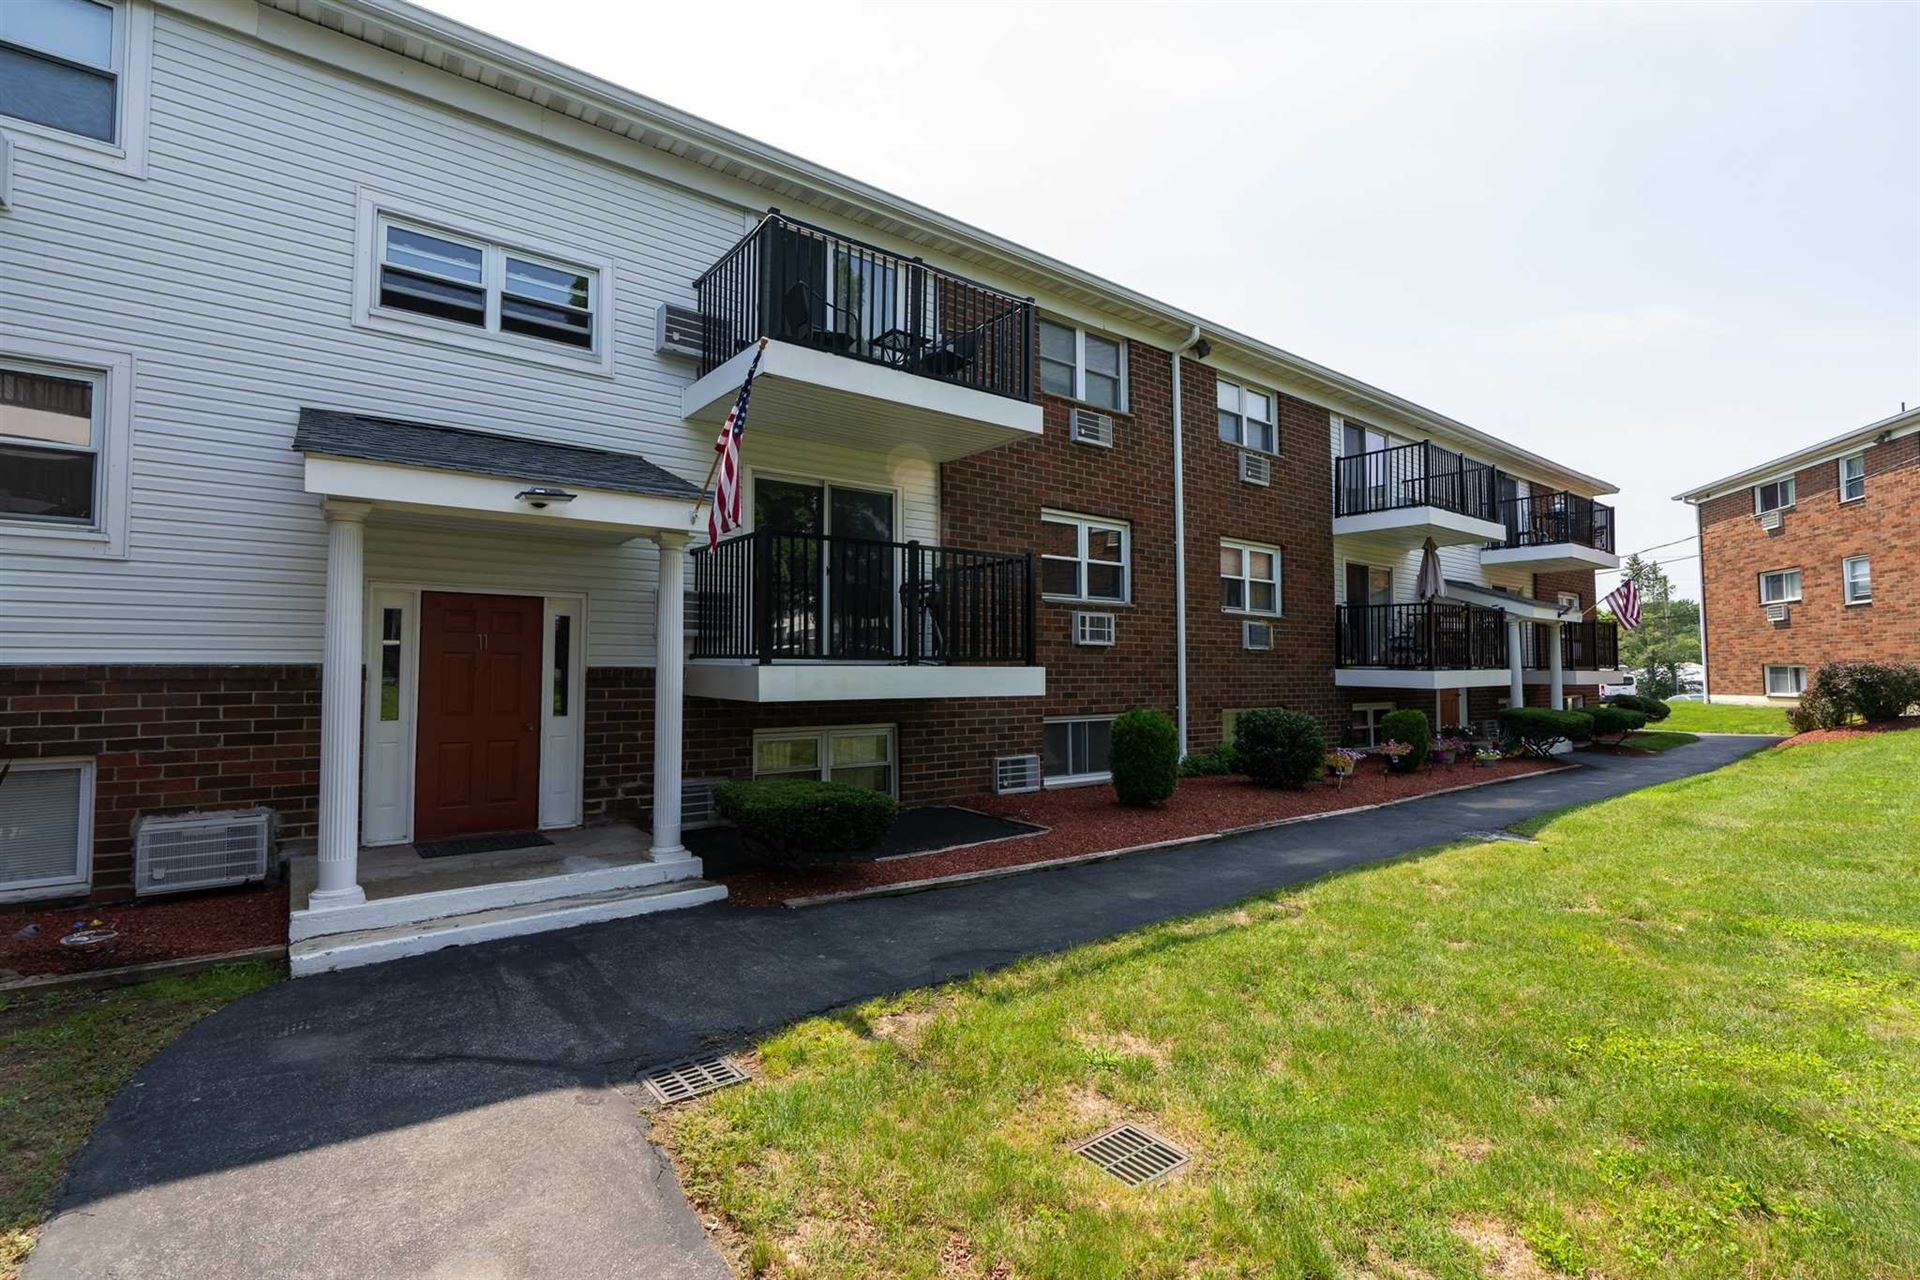 1548 ROUTE 9, Wappingers Falls, NY 12590 - #: 402547